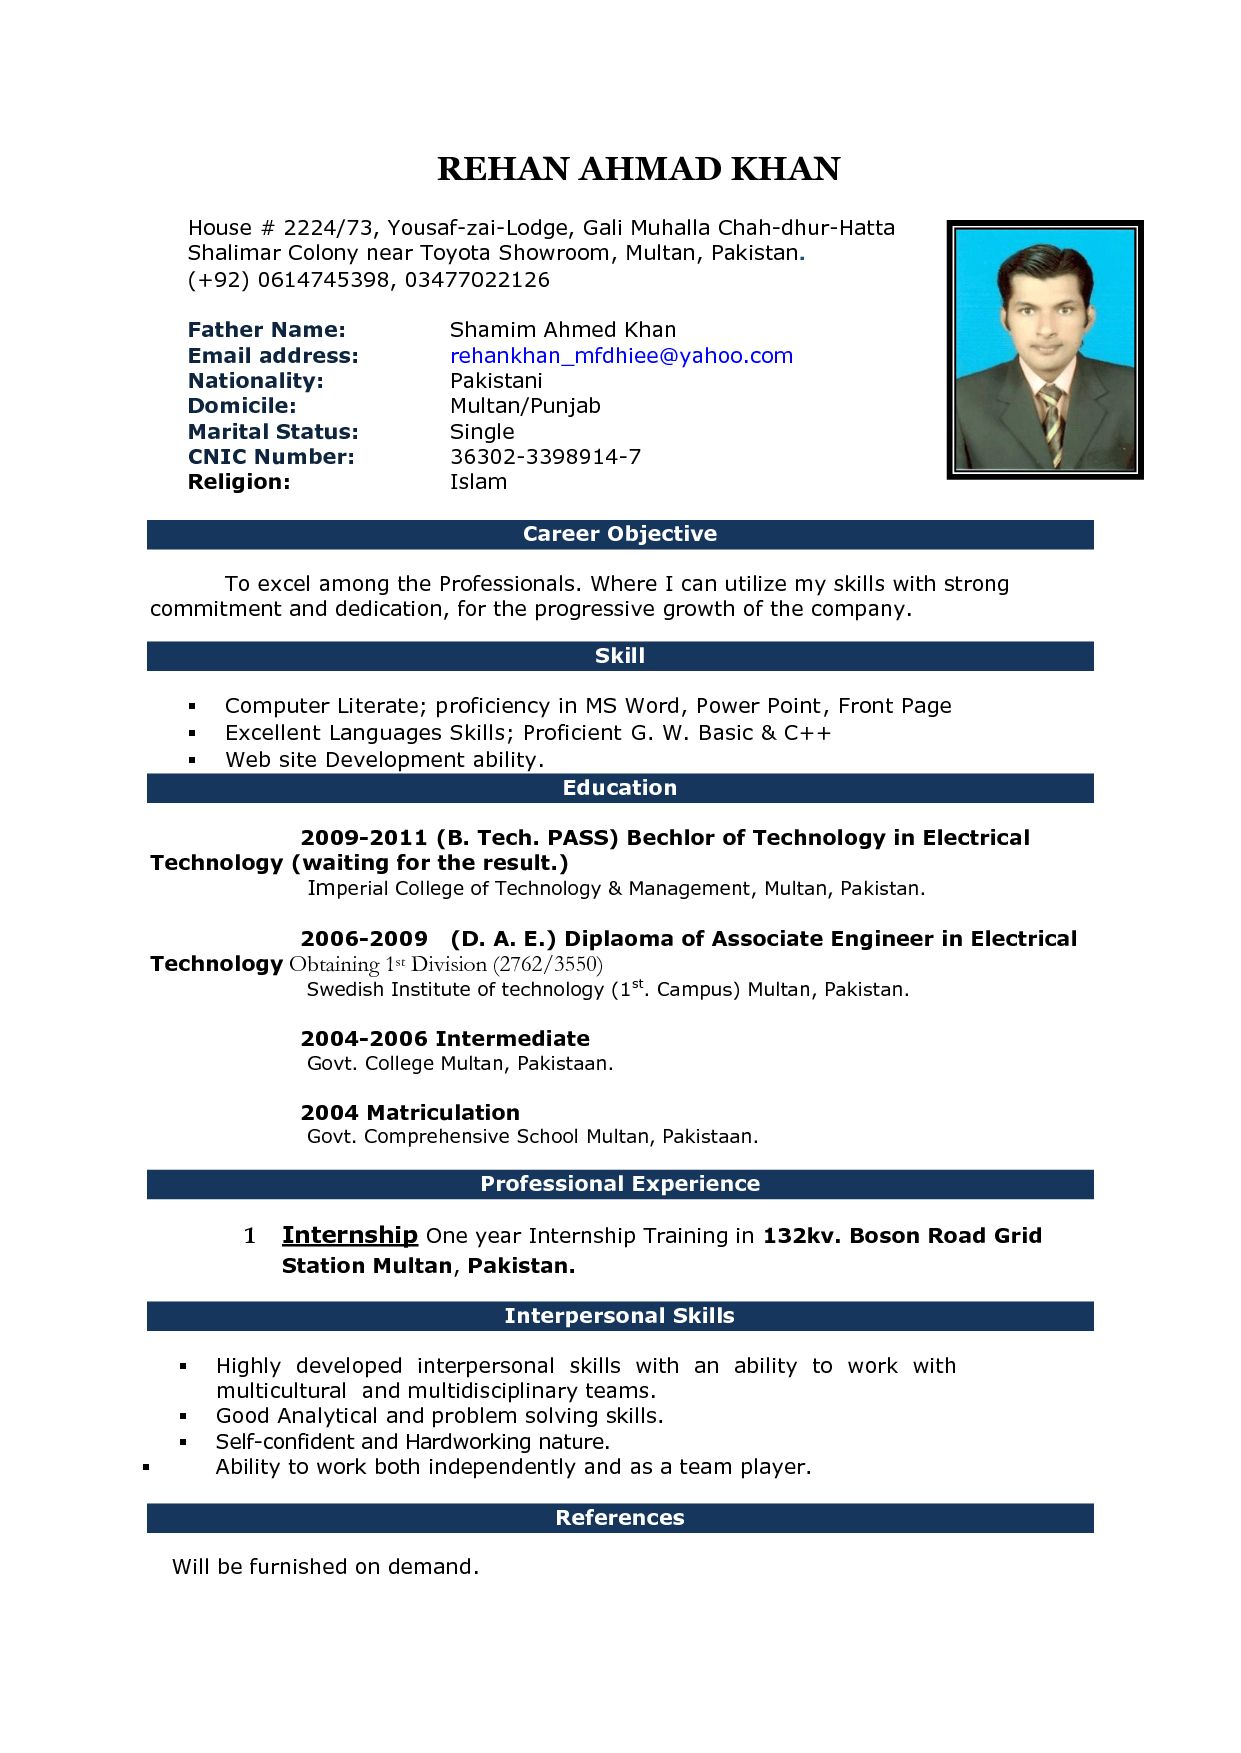 resume format in word for office boy